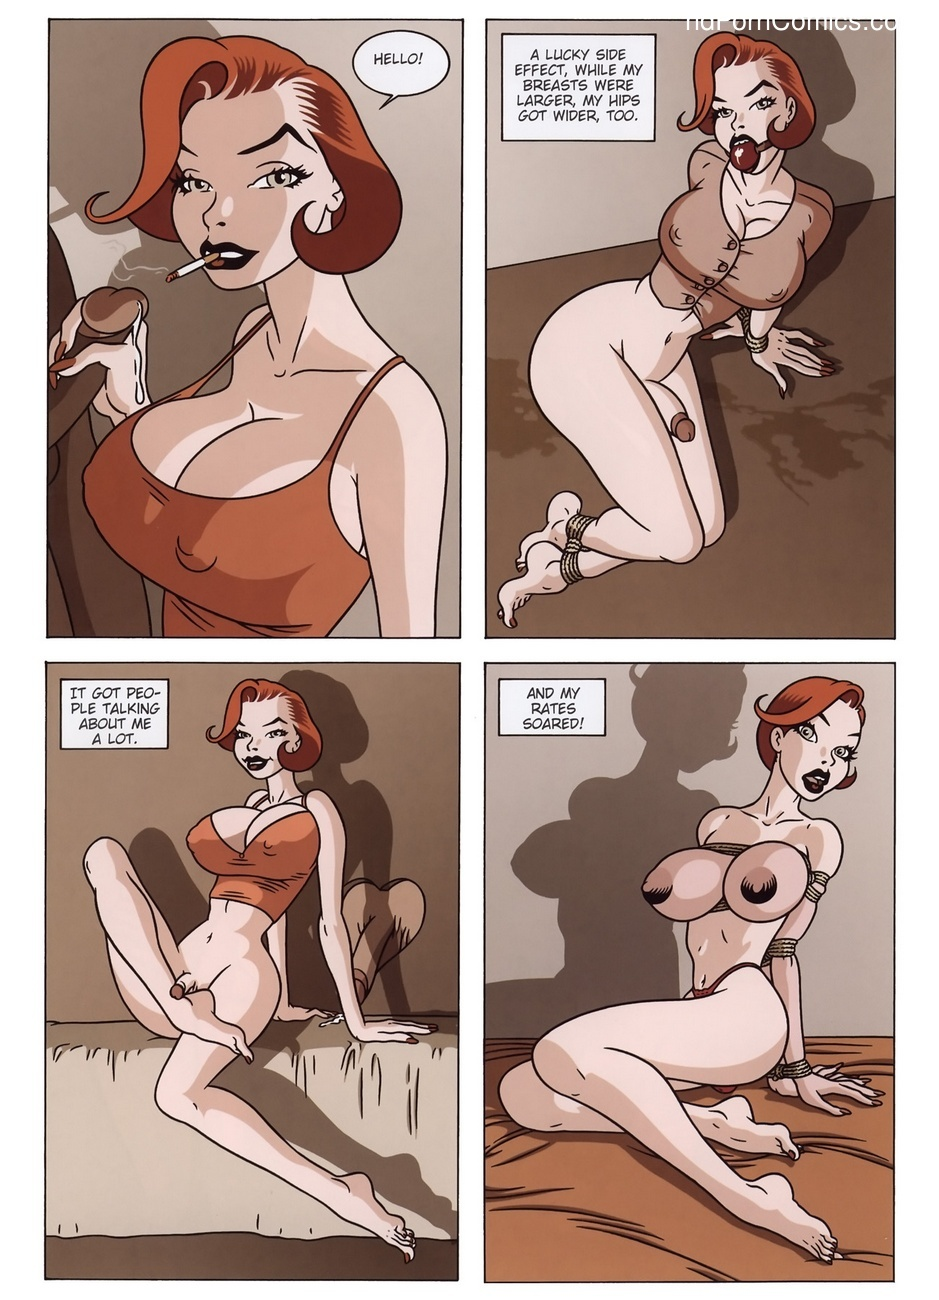 The 110 Blowjobs 9 free sex comic